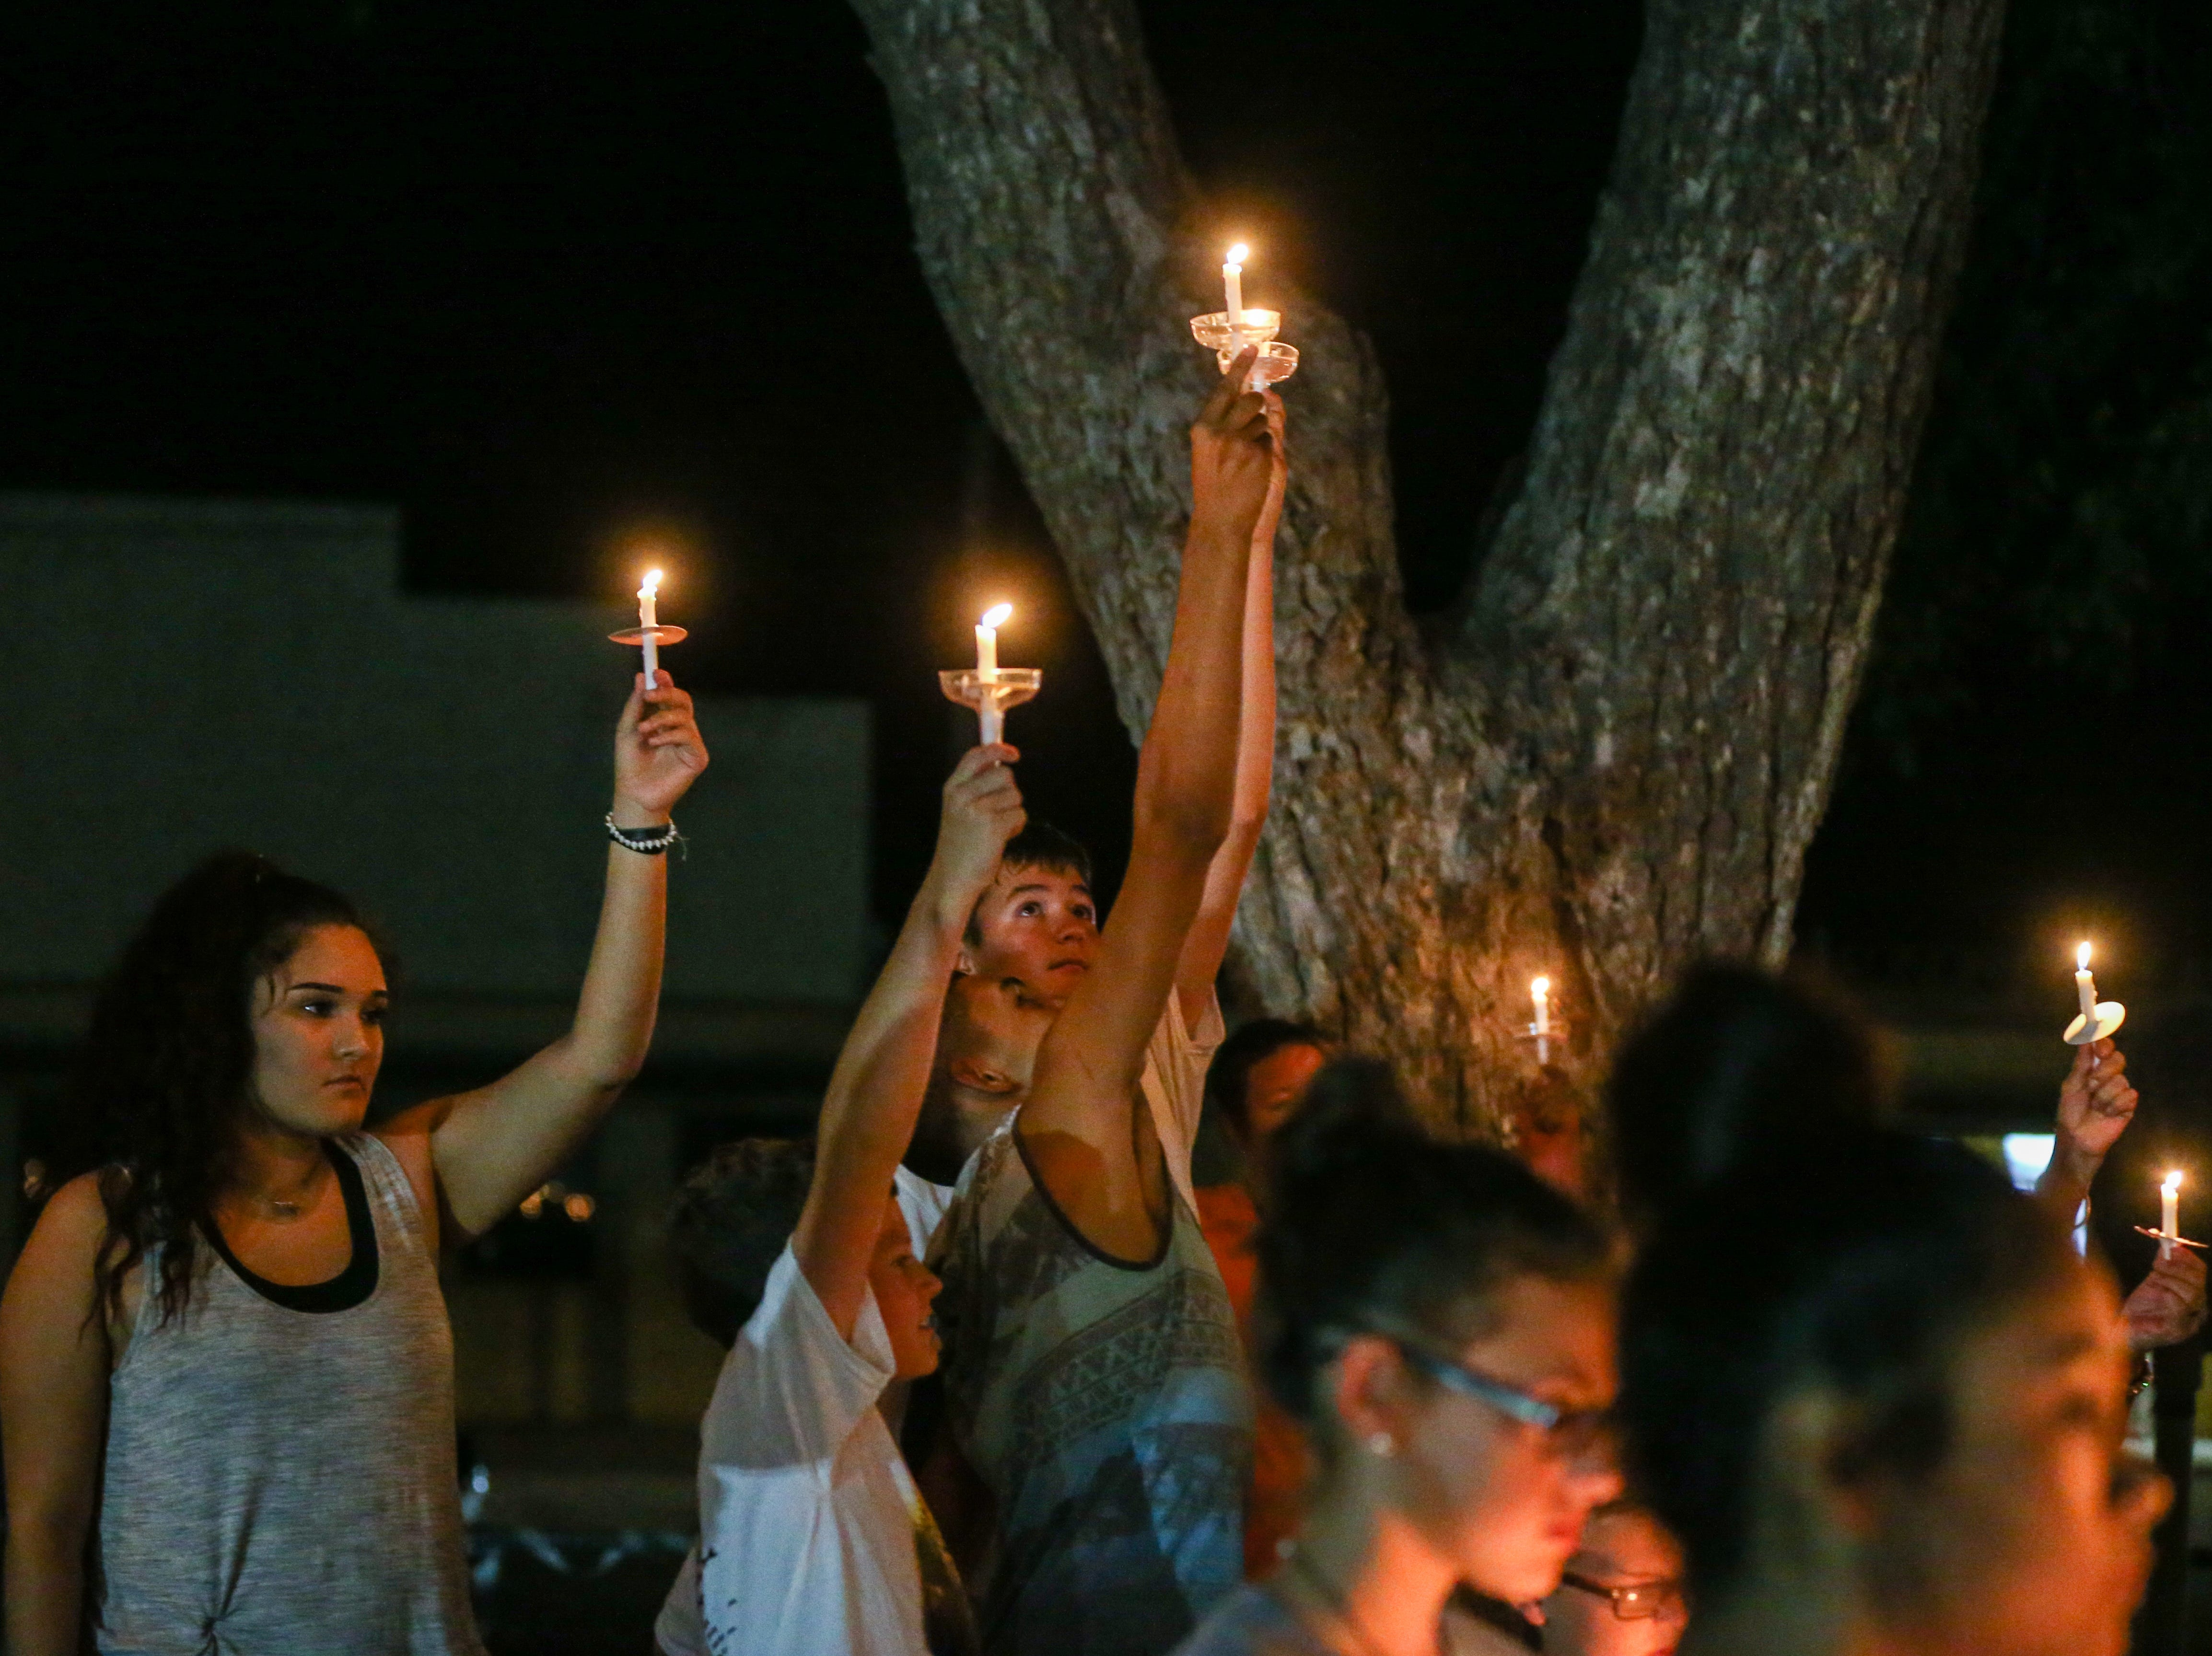 Residents hold up candles while singing 'Amazing Grace' during a vigil for all those affected by the flood Saturday, Oct. 13, 2018, in Junction.